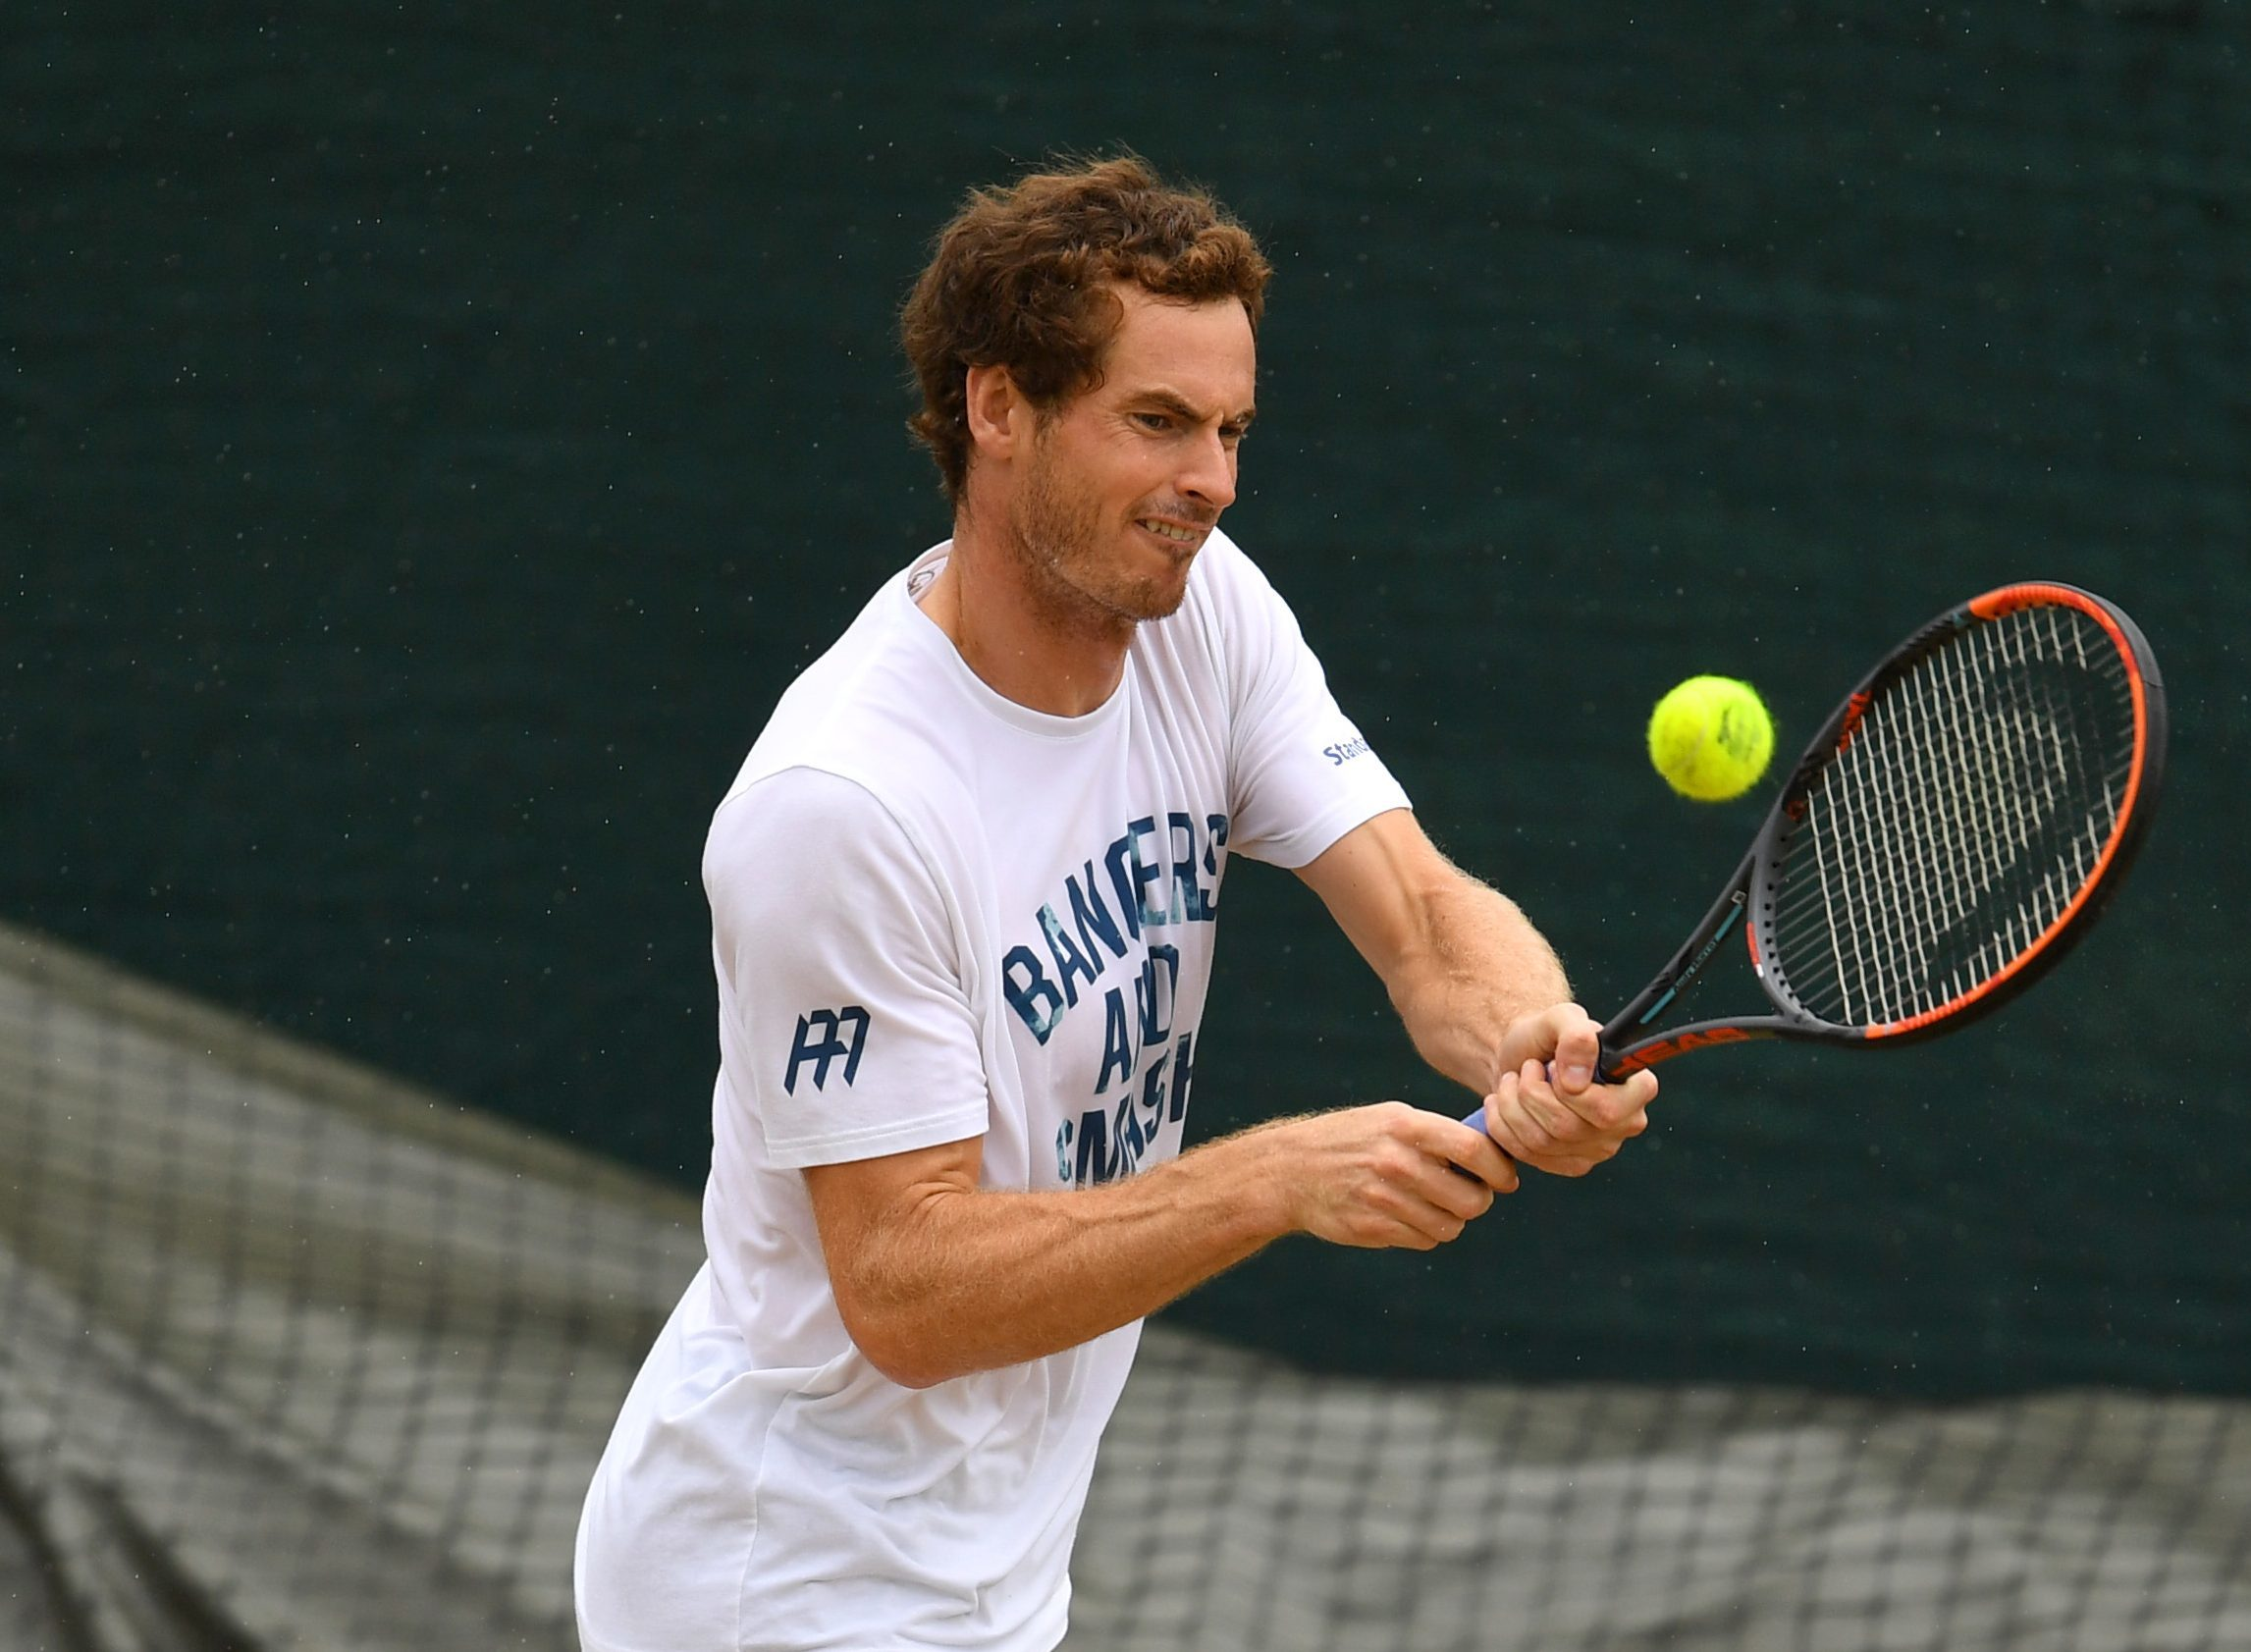 Andy Murray of Great Britain plays a backhand during a practice session on day eight of Wimbledon (David Ramos/Getty Images)